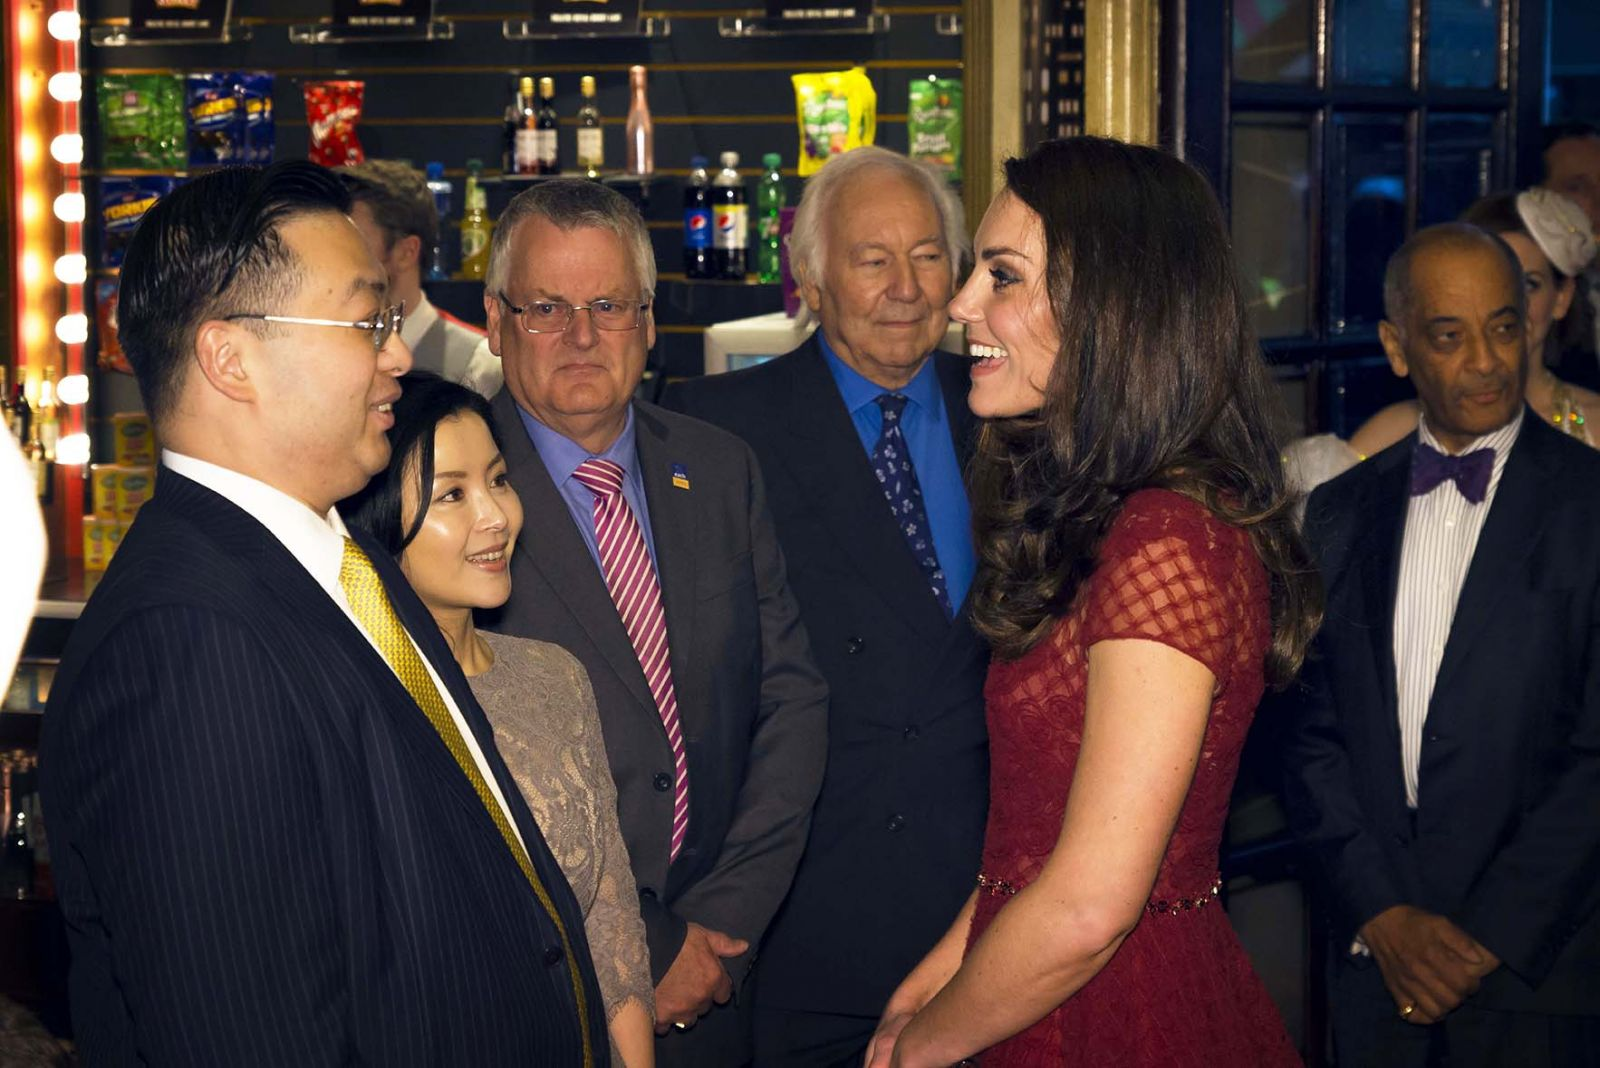 DUCHESS OF CAMBRIDGE ATTENDS 42ND STREET